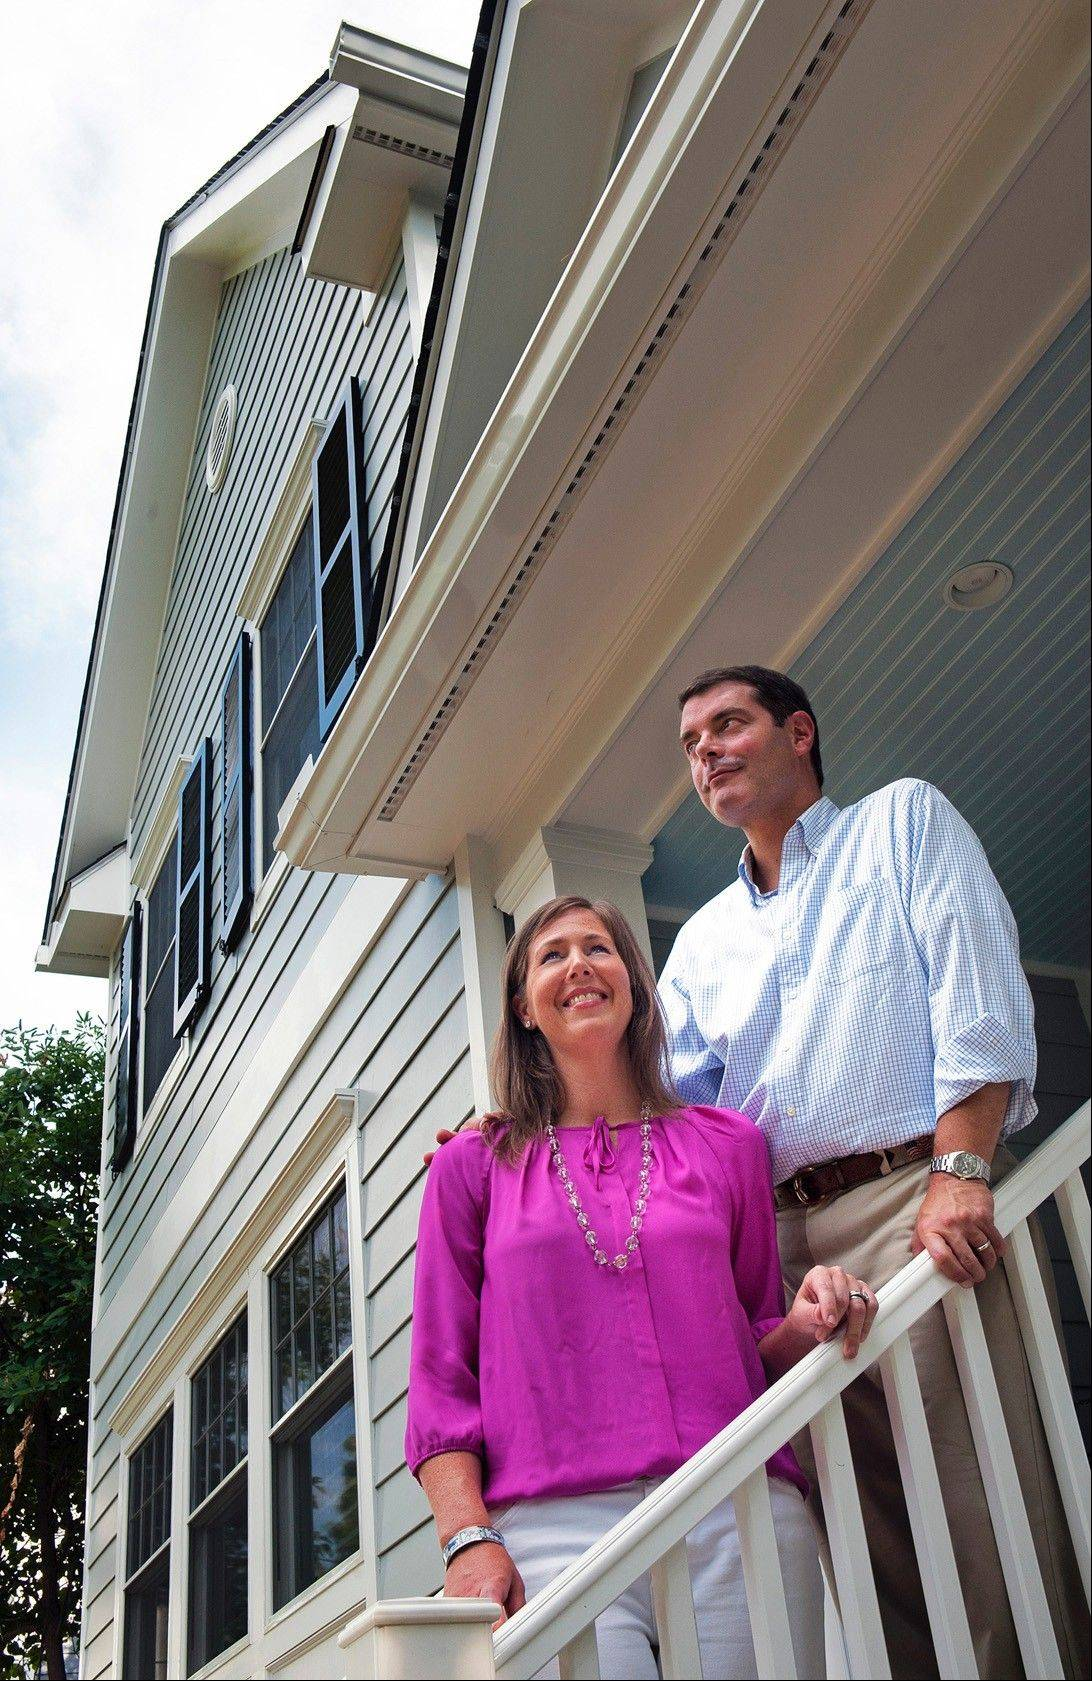 Homeowners Catherine and Nick Swezey, of Washington, D.C., on the front porch of their recently remodeled home.